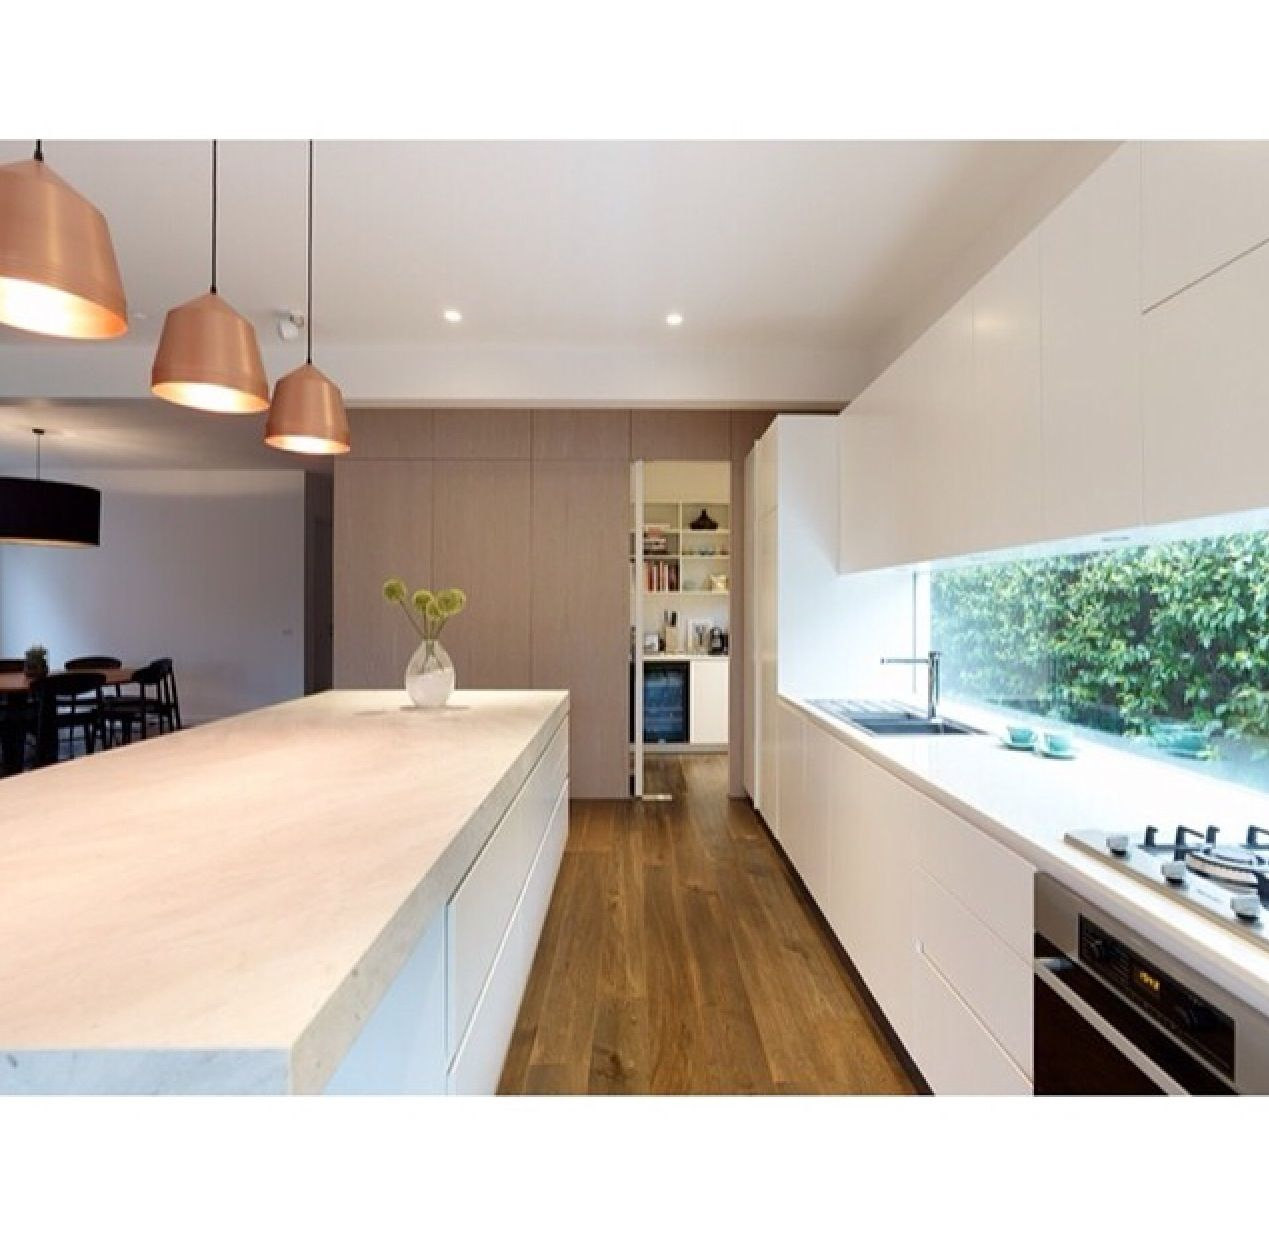 Kitchen Pantry Lighting: Kitchen. Window Splash Back, Lighting. Open Plan, Simple And Modern